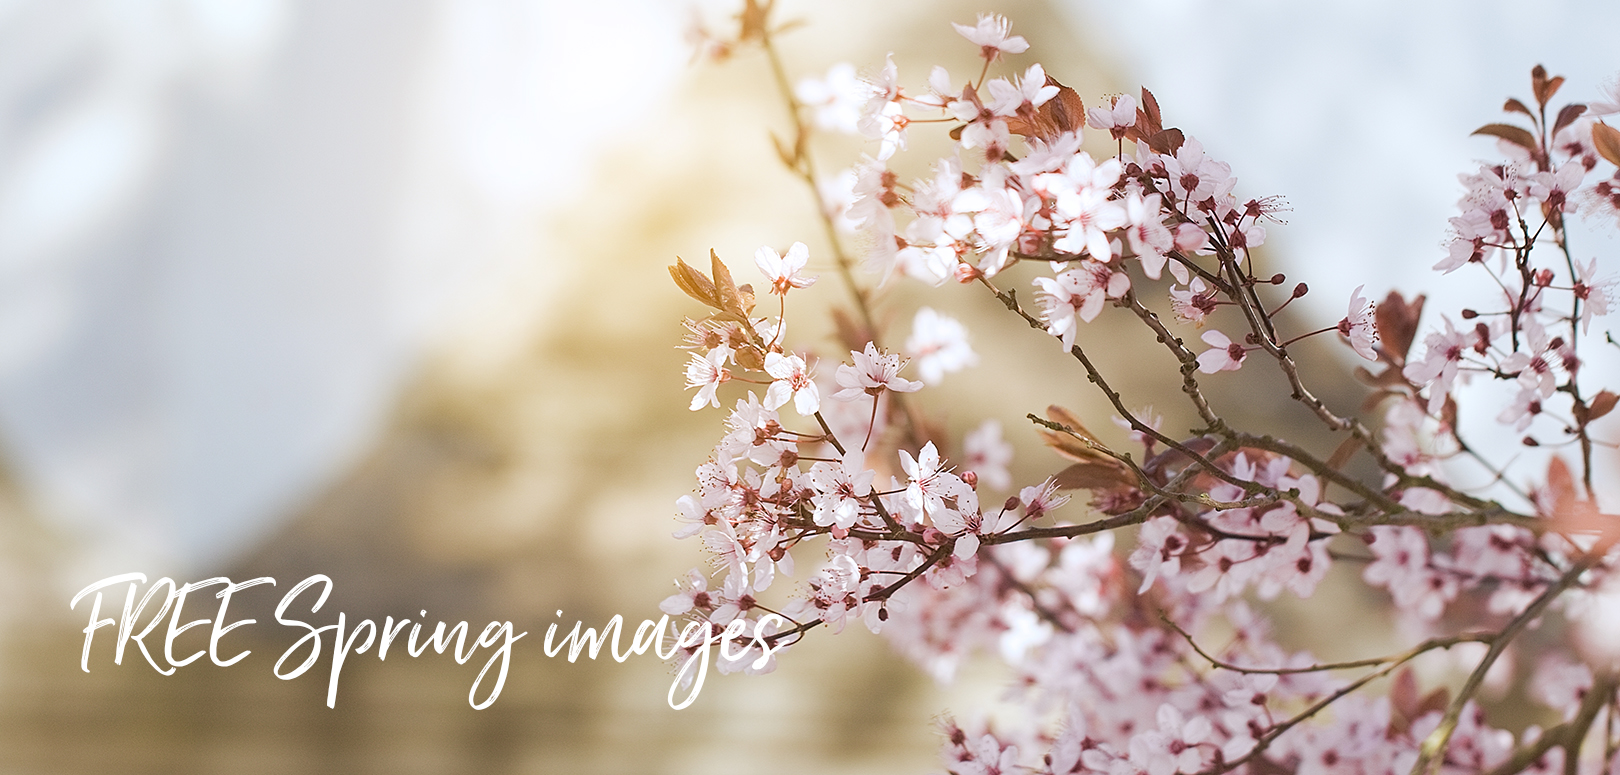 FREE Spring images